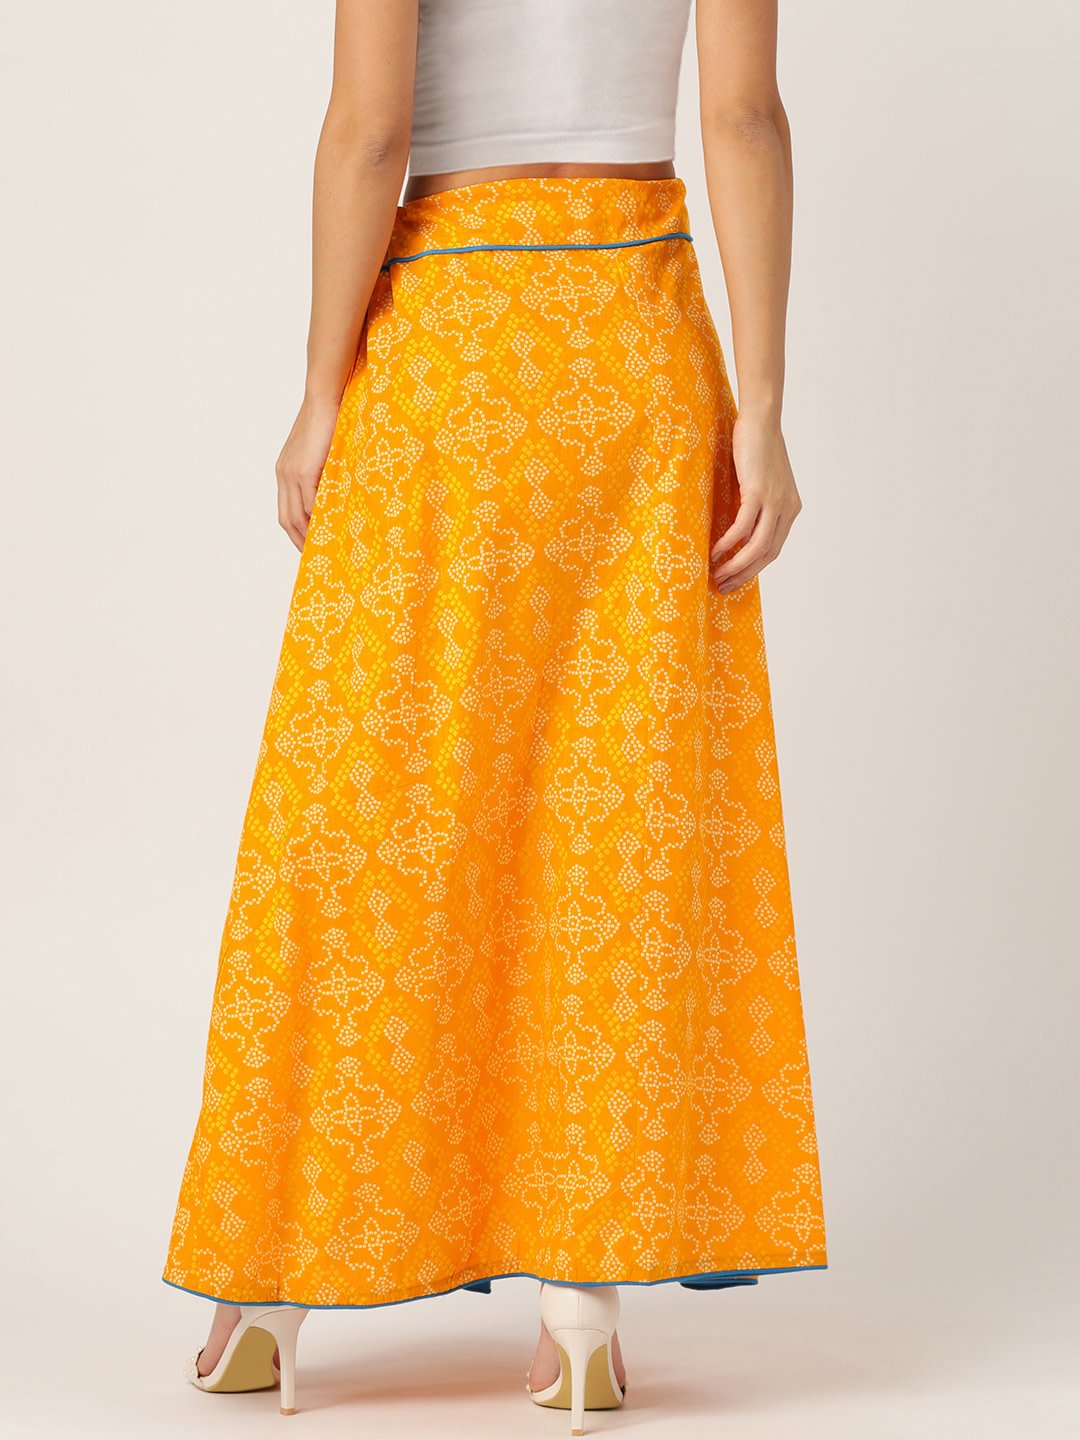 YELLOW BANDHINI SKIRT